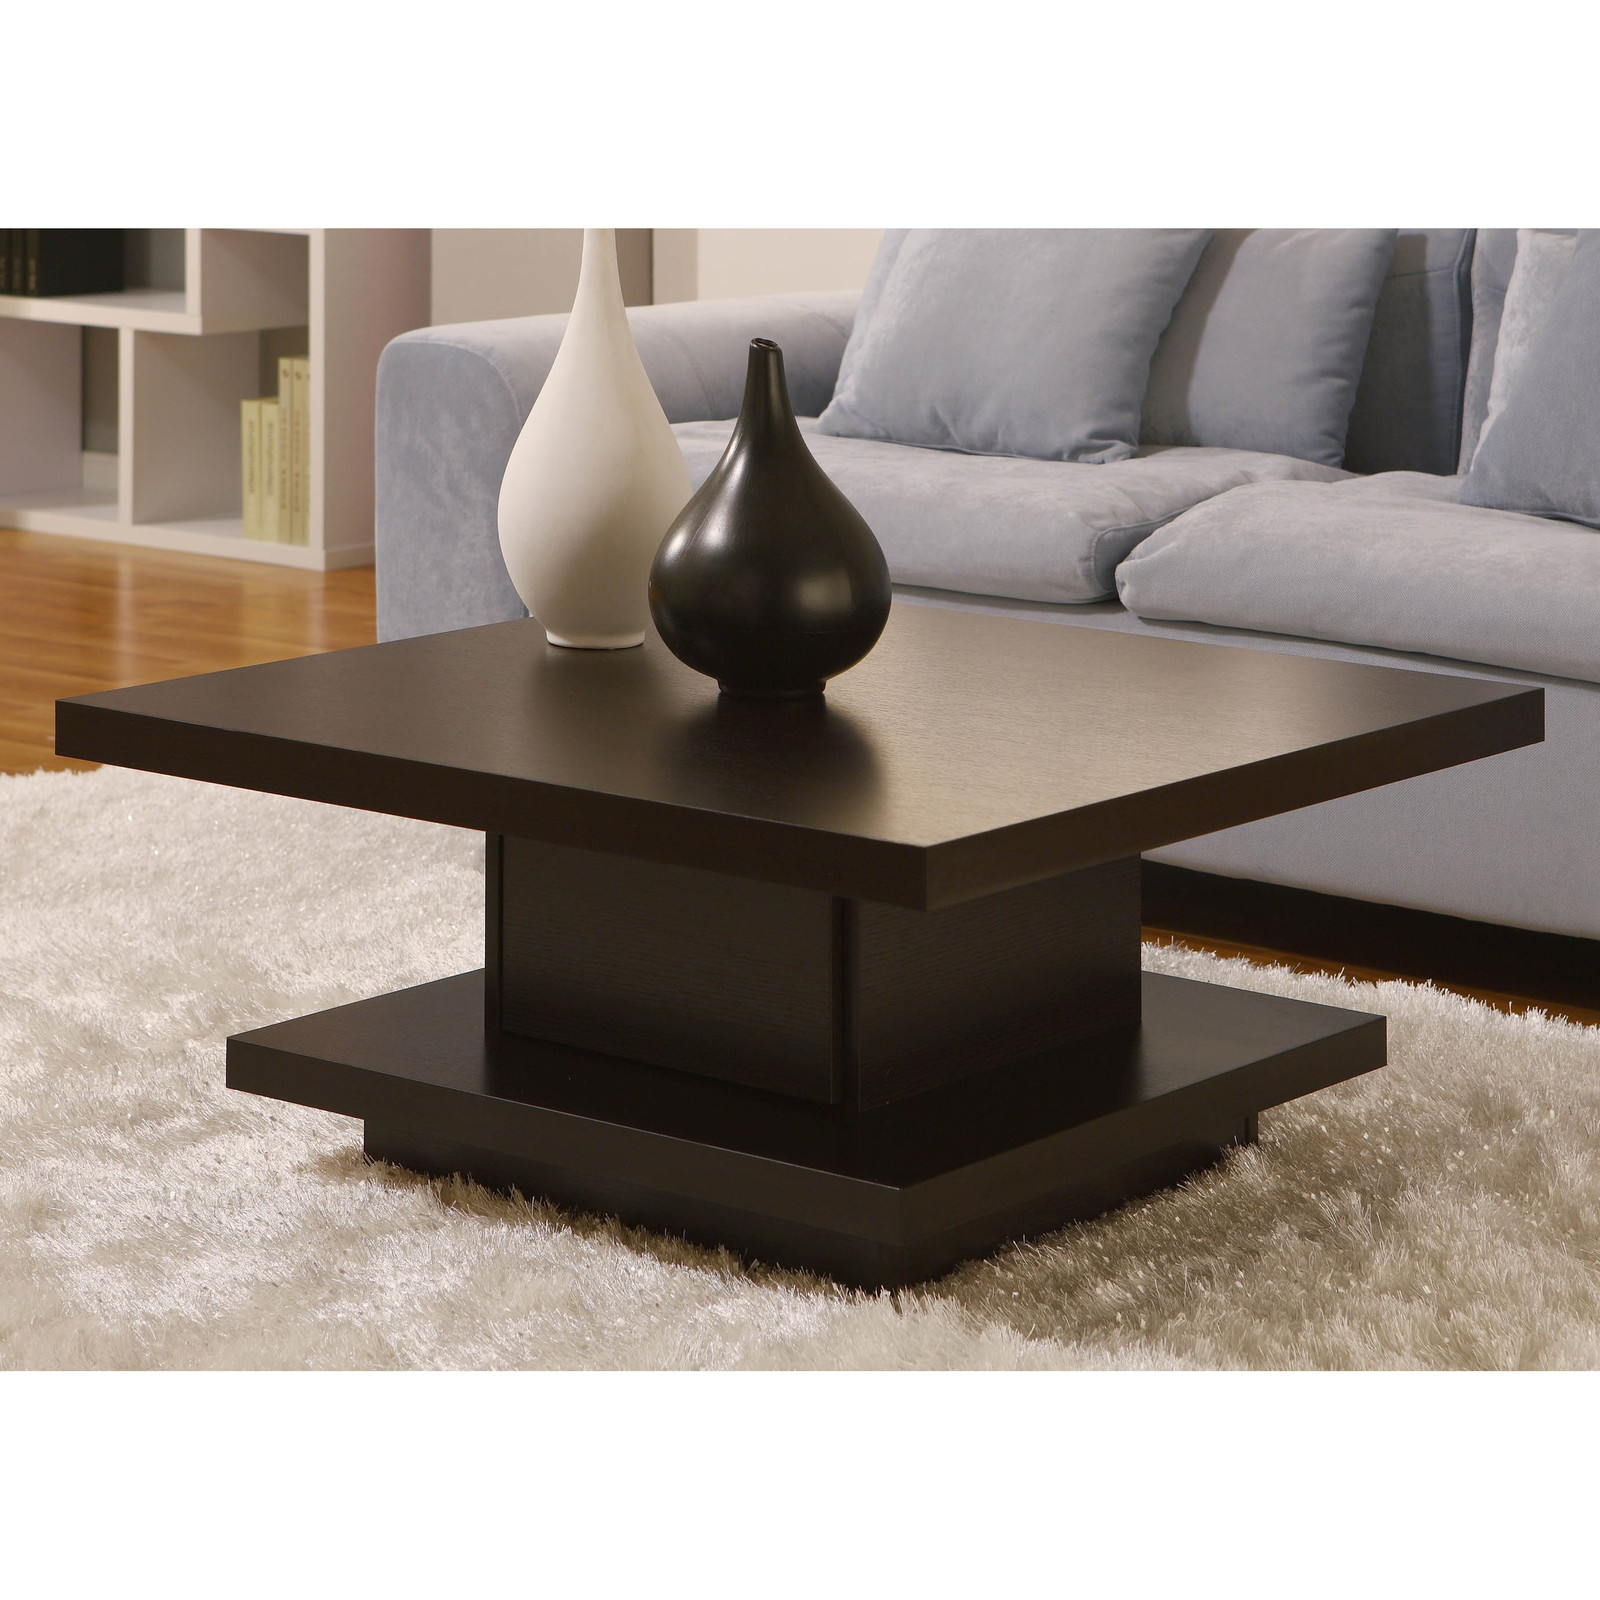 Contemporary Modern Wood Coffee Tables Unique Square Style With